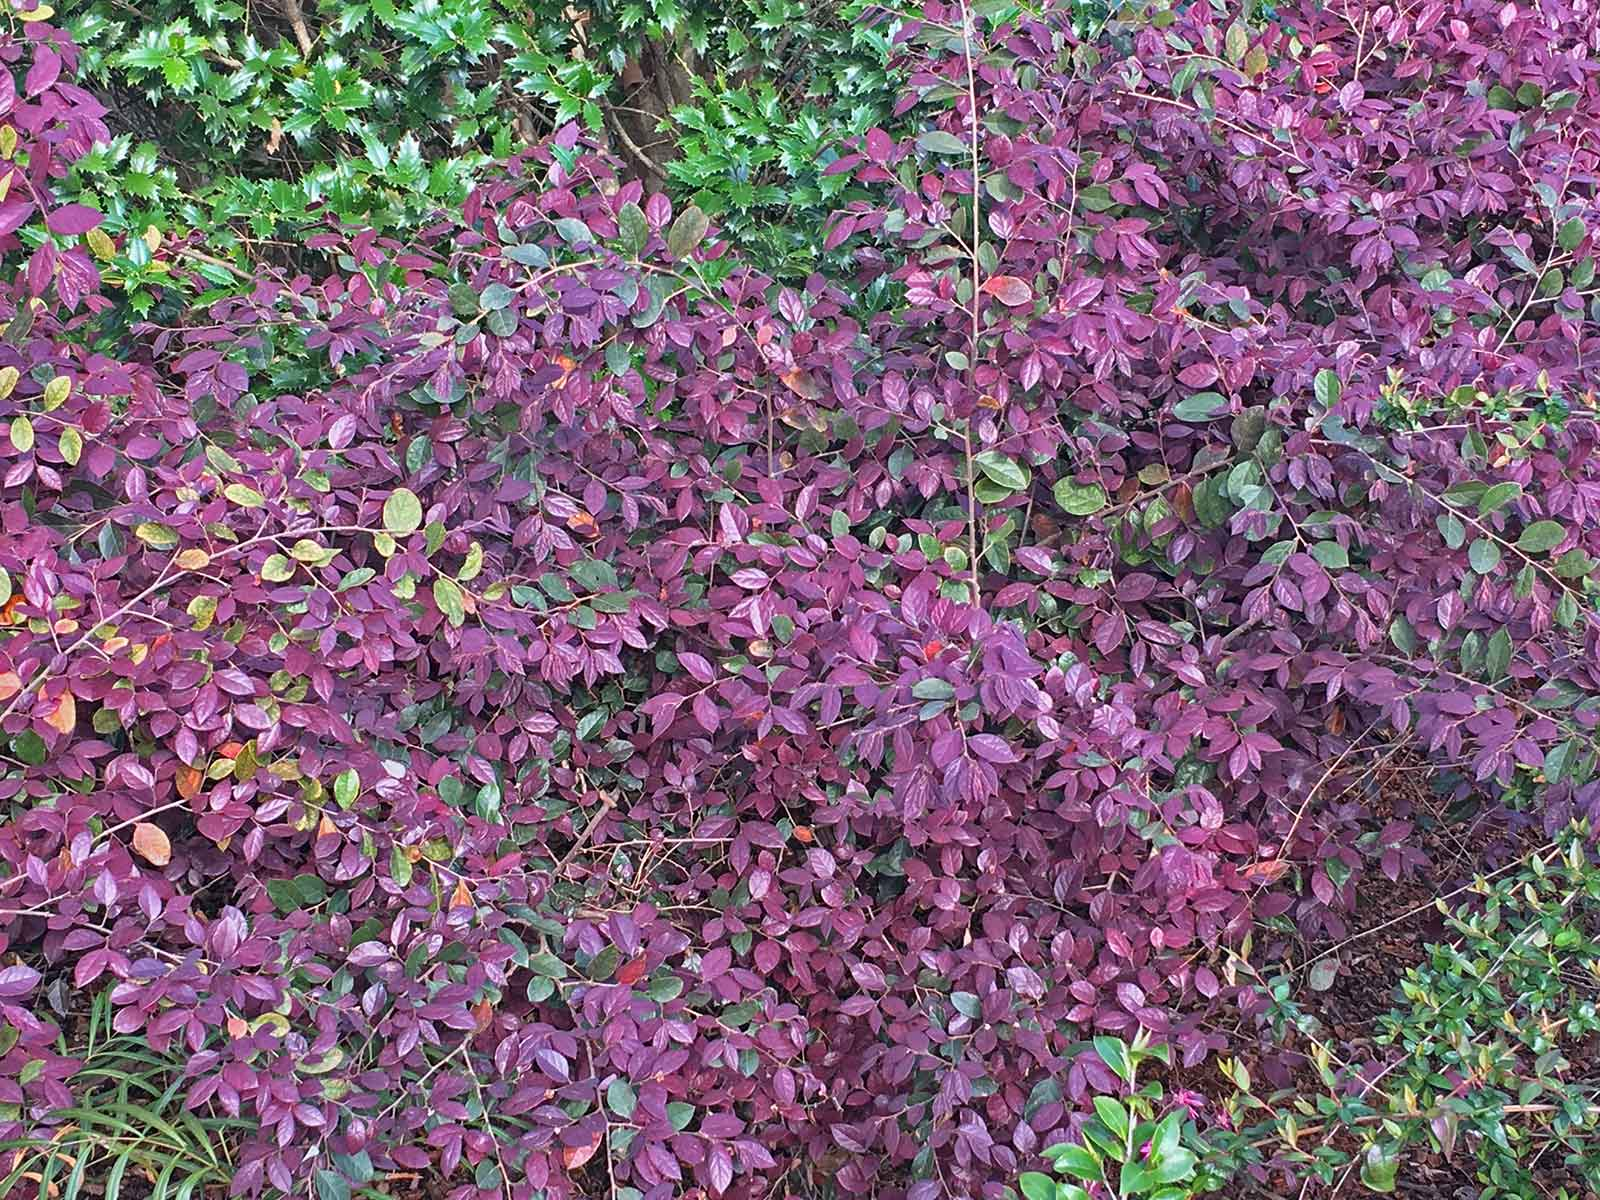 Loropetalum leaves can have a wide range in color from green to a vibrant purple.